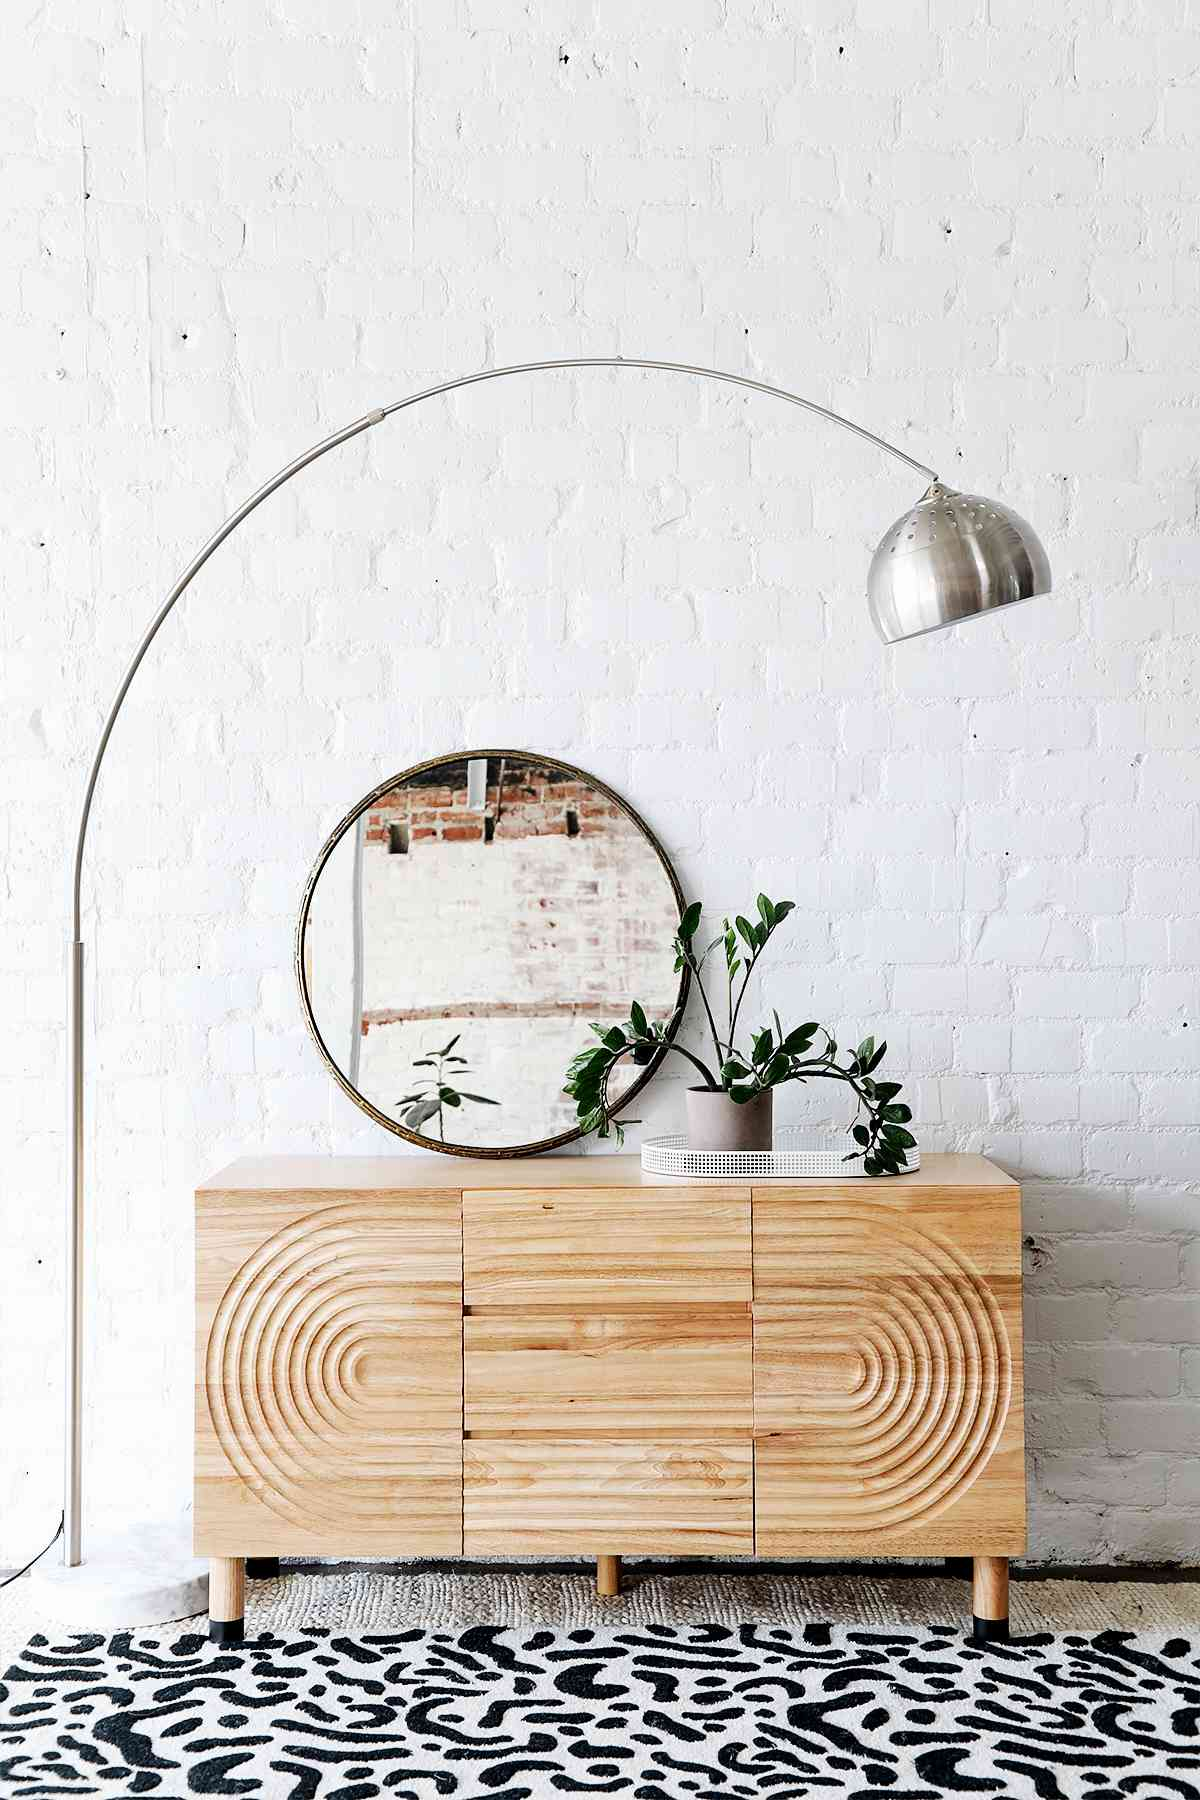 Modern vignette with wood architectural dresser, abstract rug, and simple styling